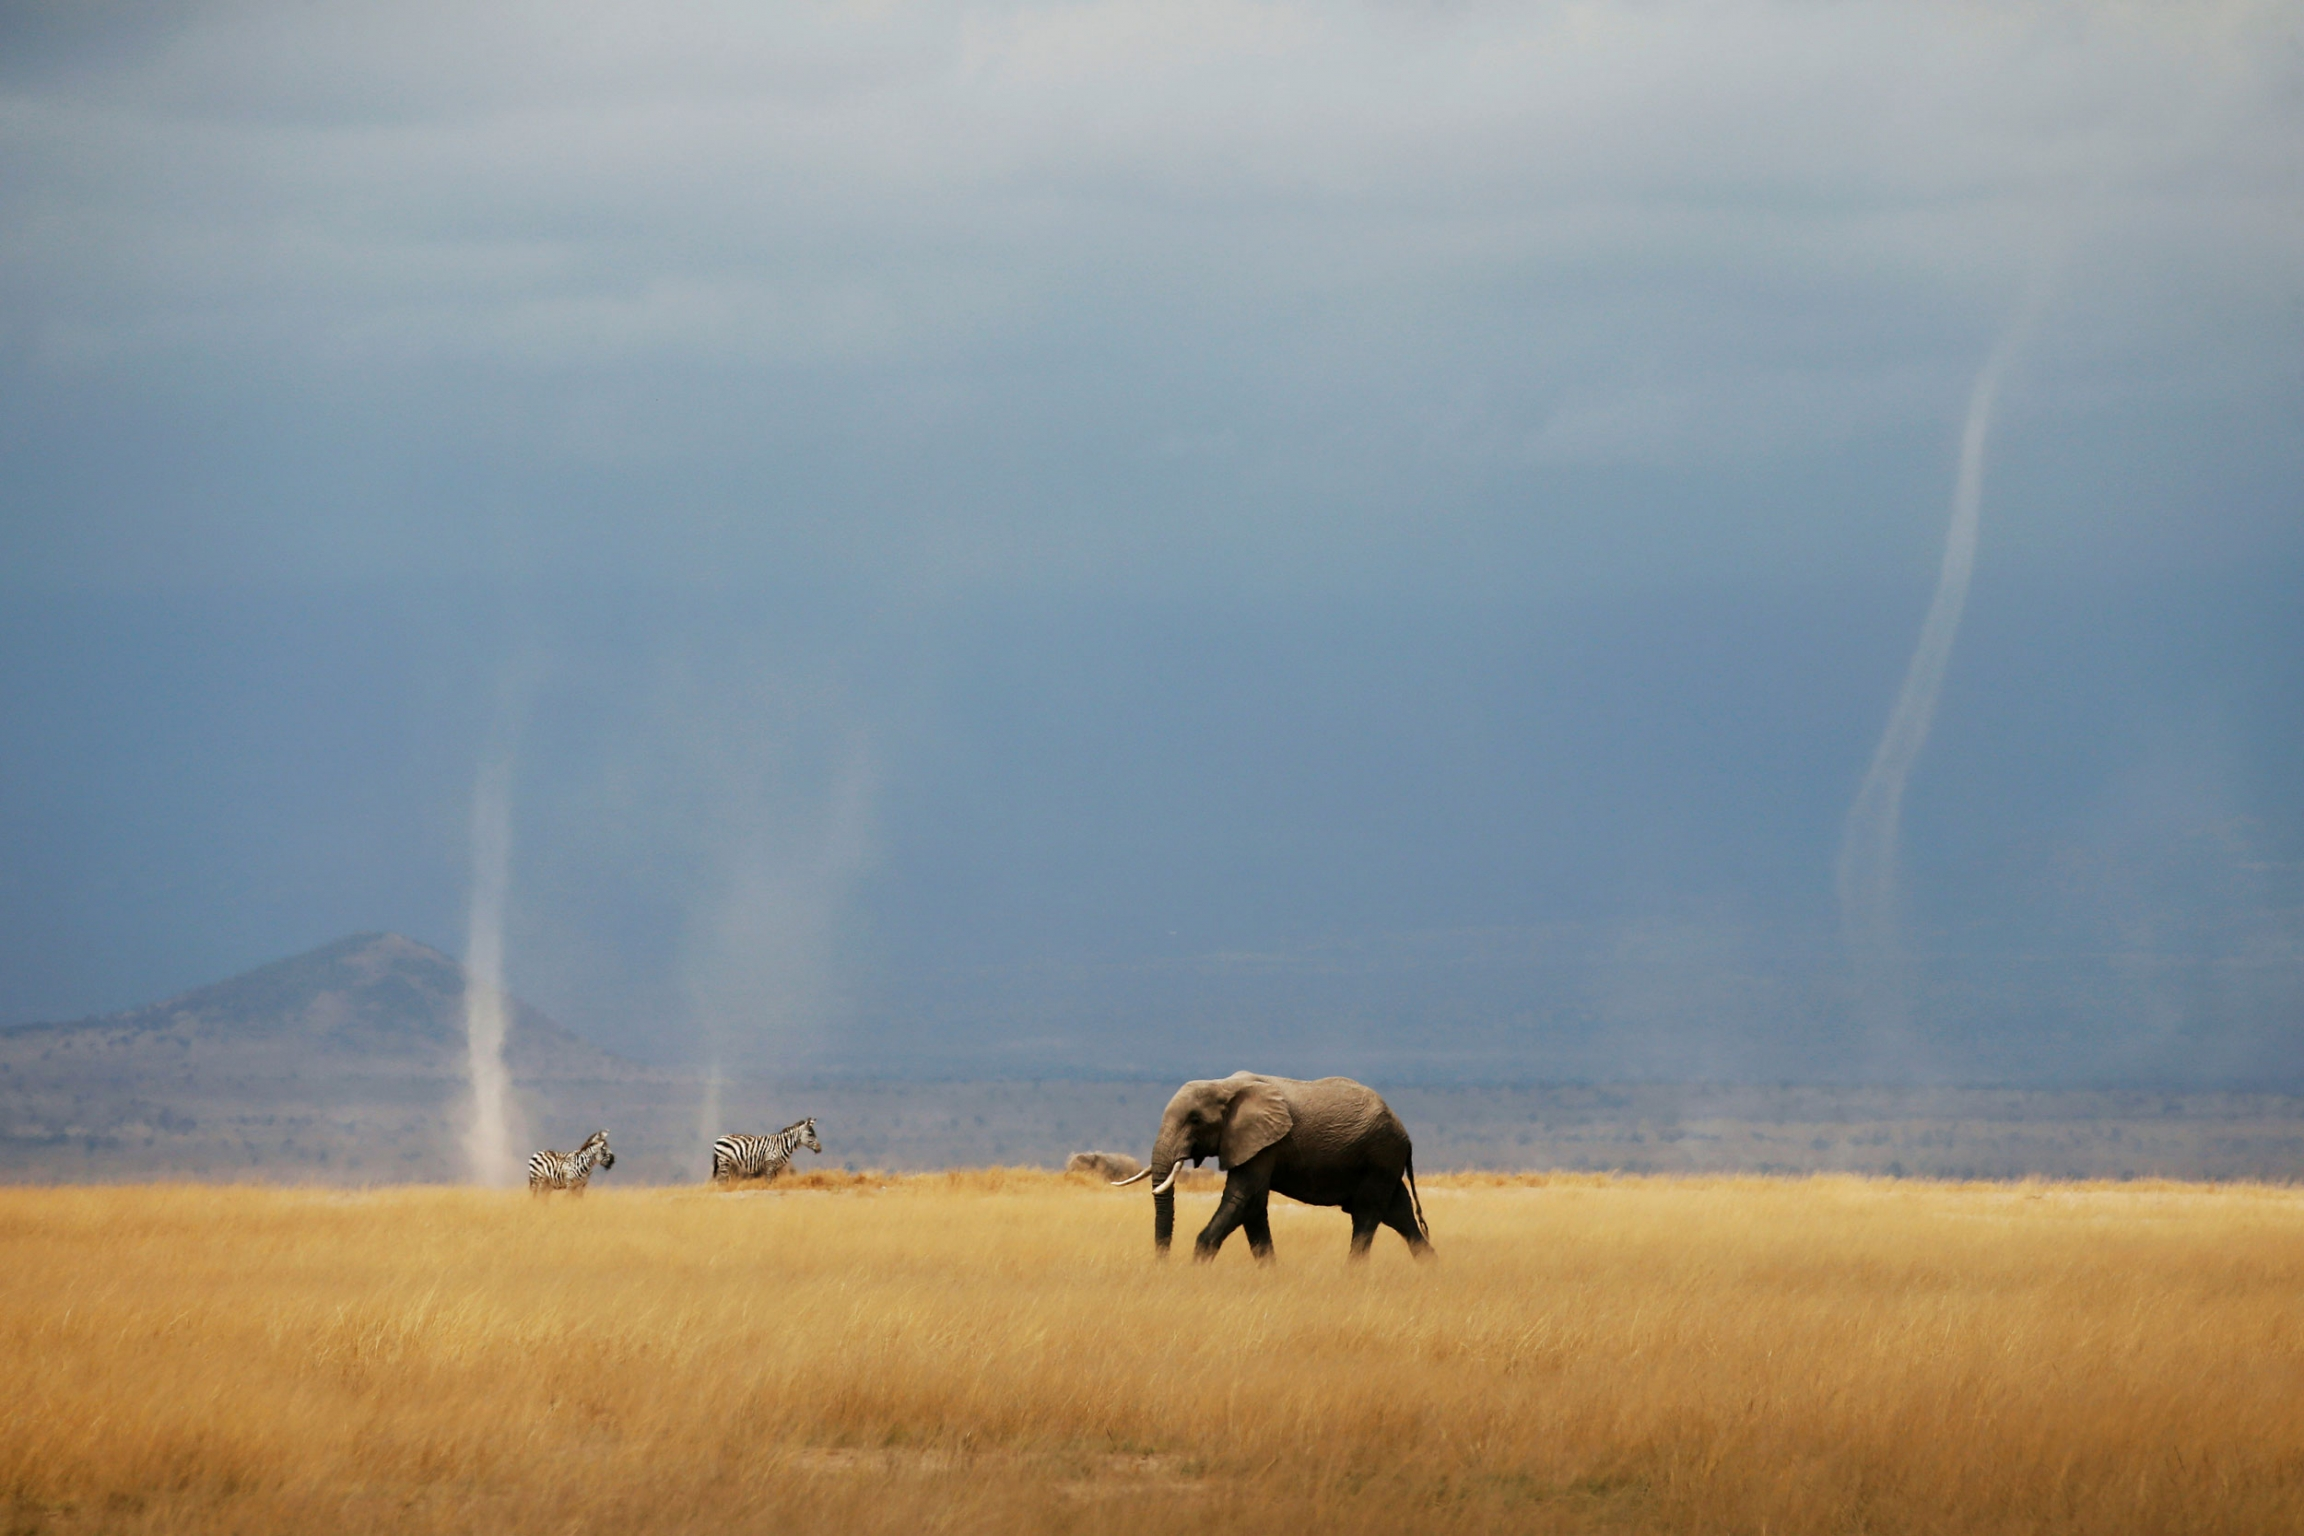 A whirlwind is seen as elephant and zebras walk through the Amboseli National Park, Kenya.